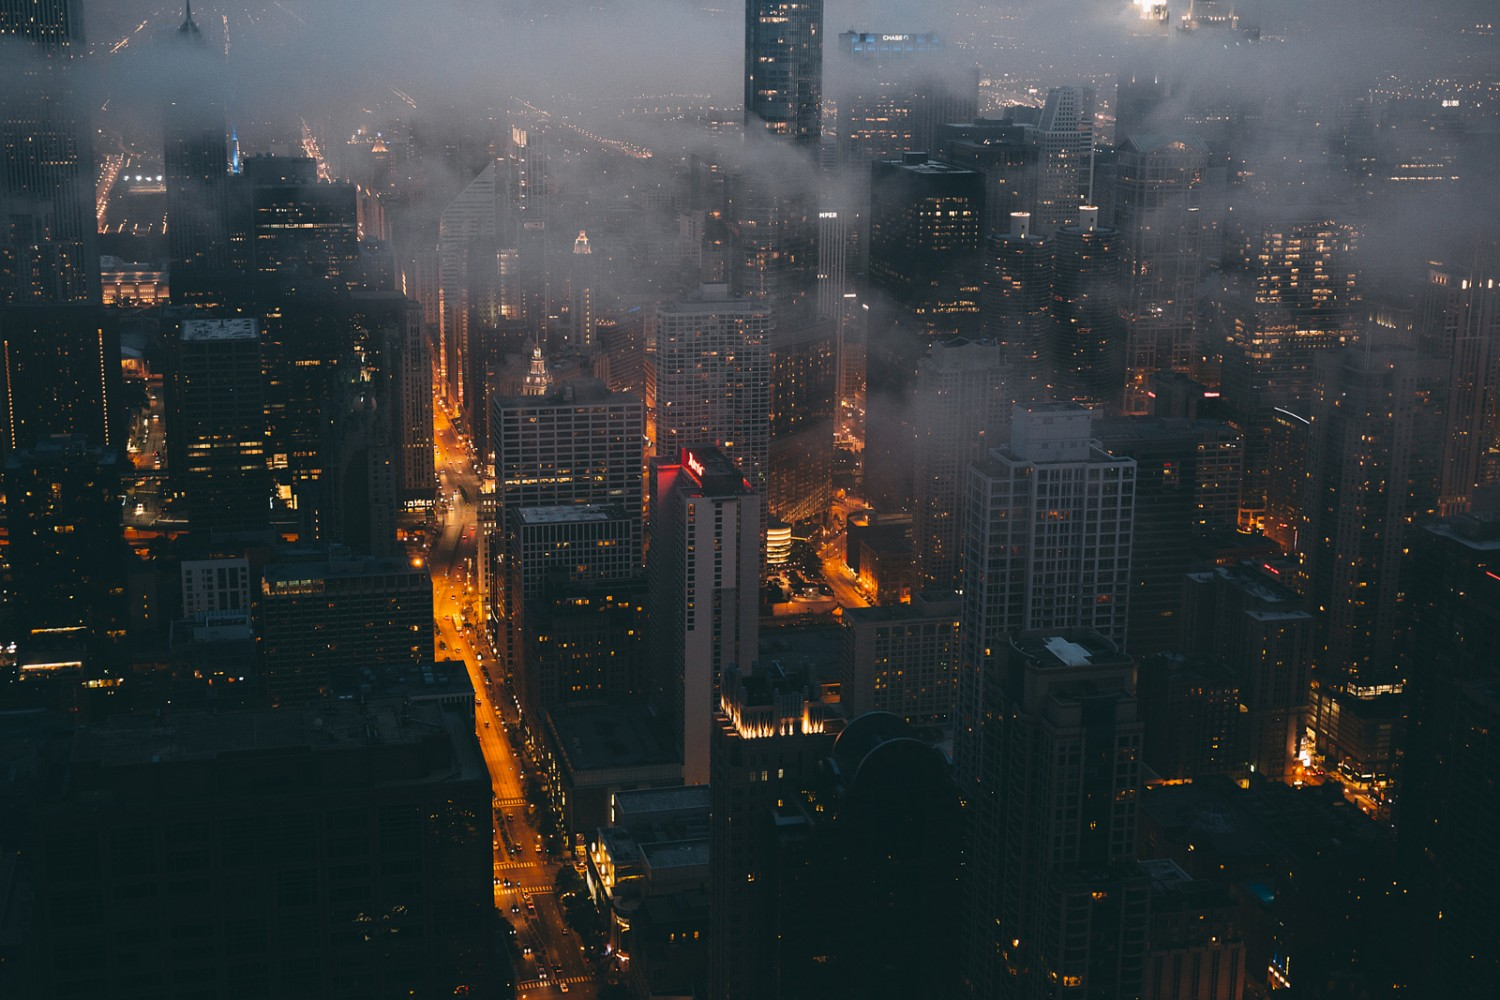 500px NEXT: Moody & Dramatic Cityscapes by Michael Salisbury